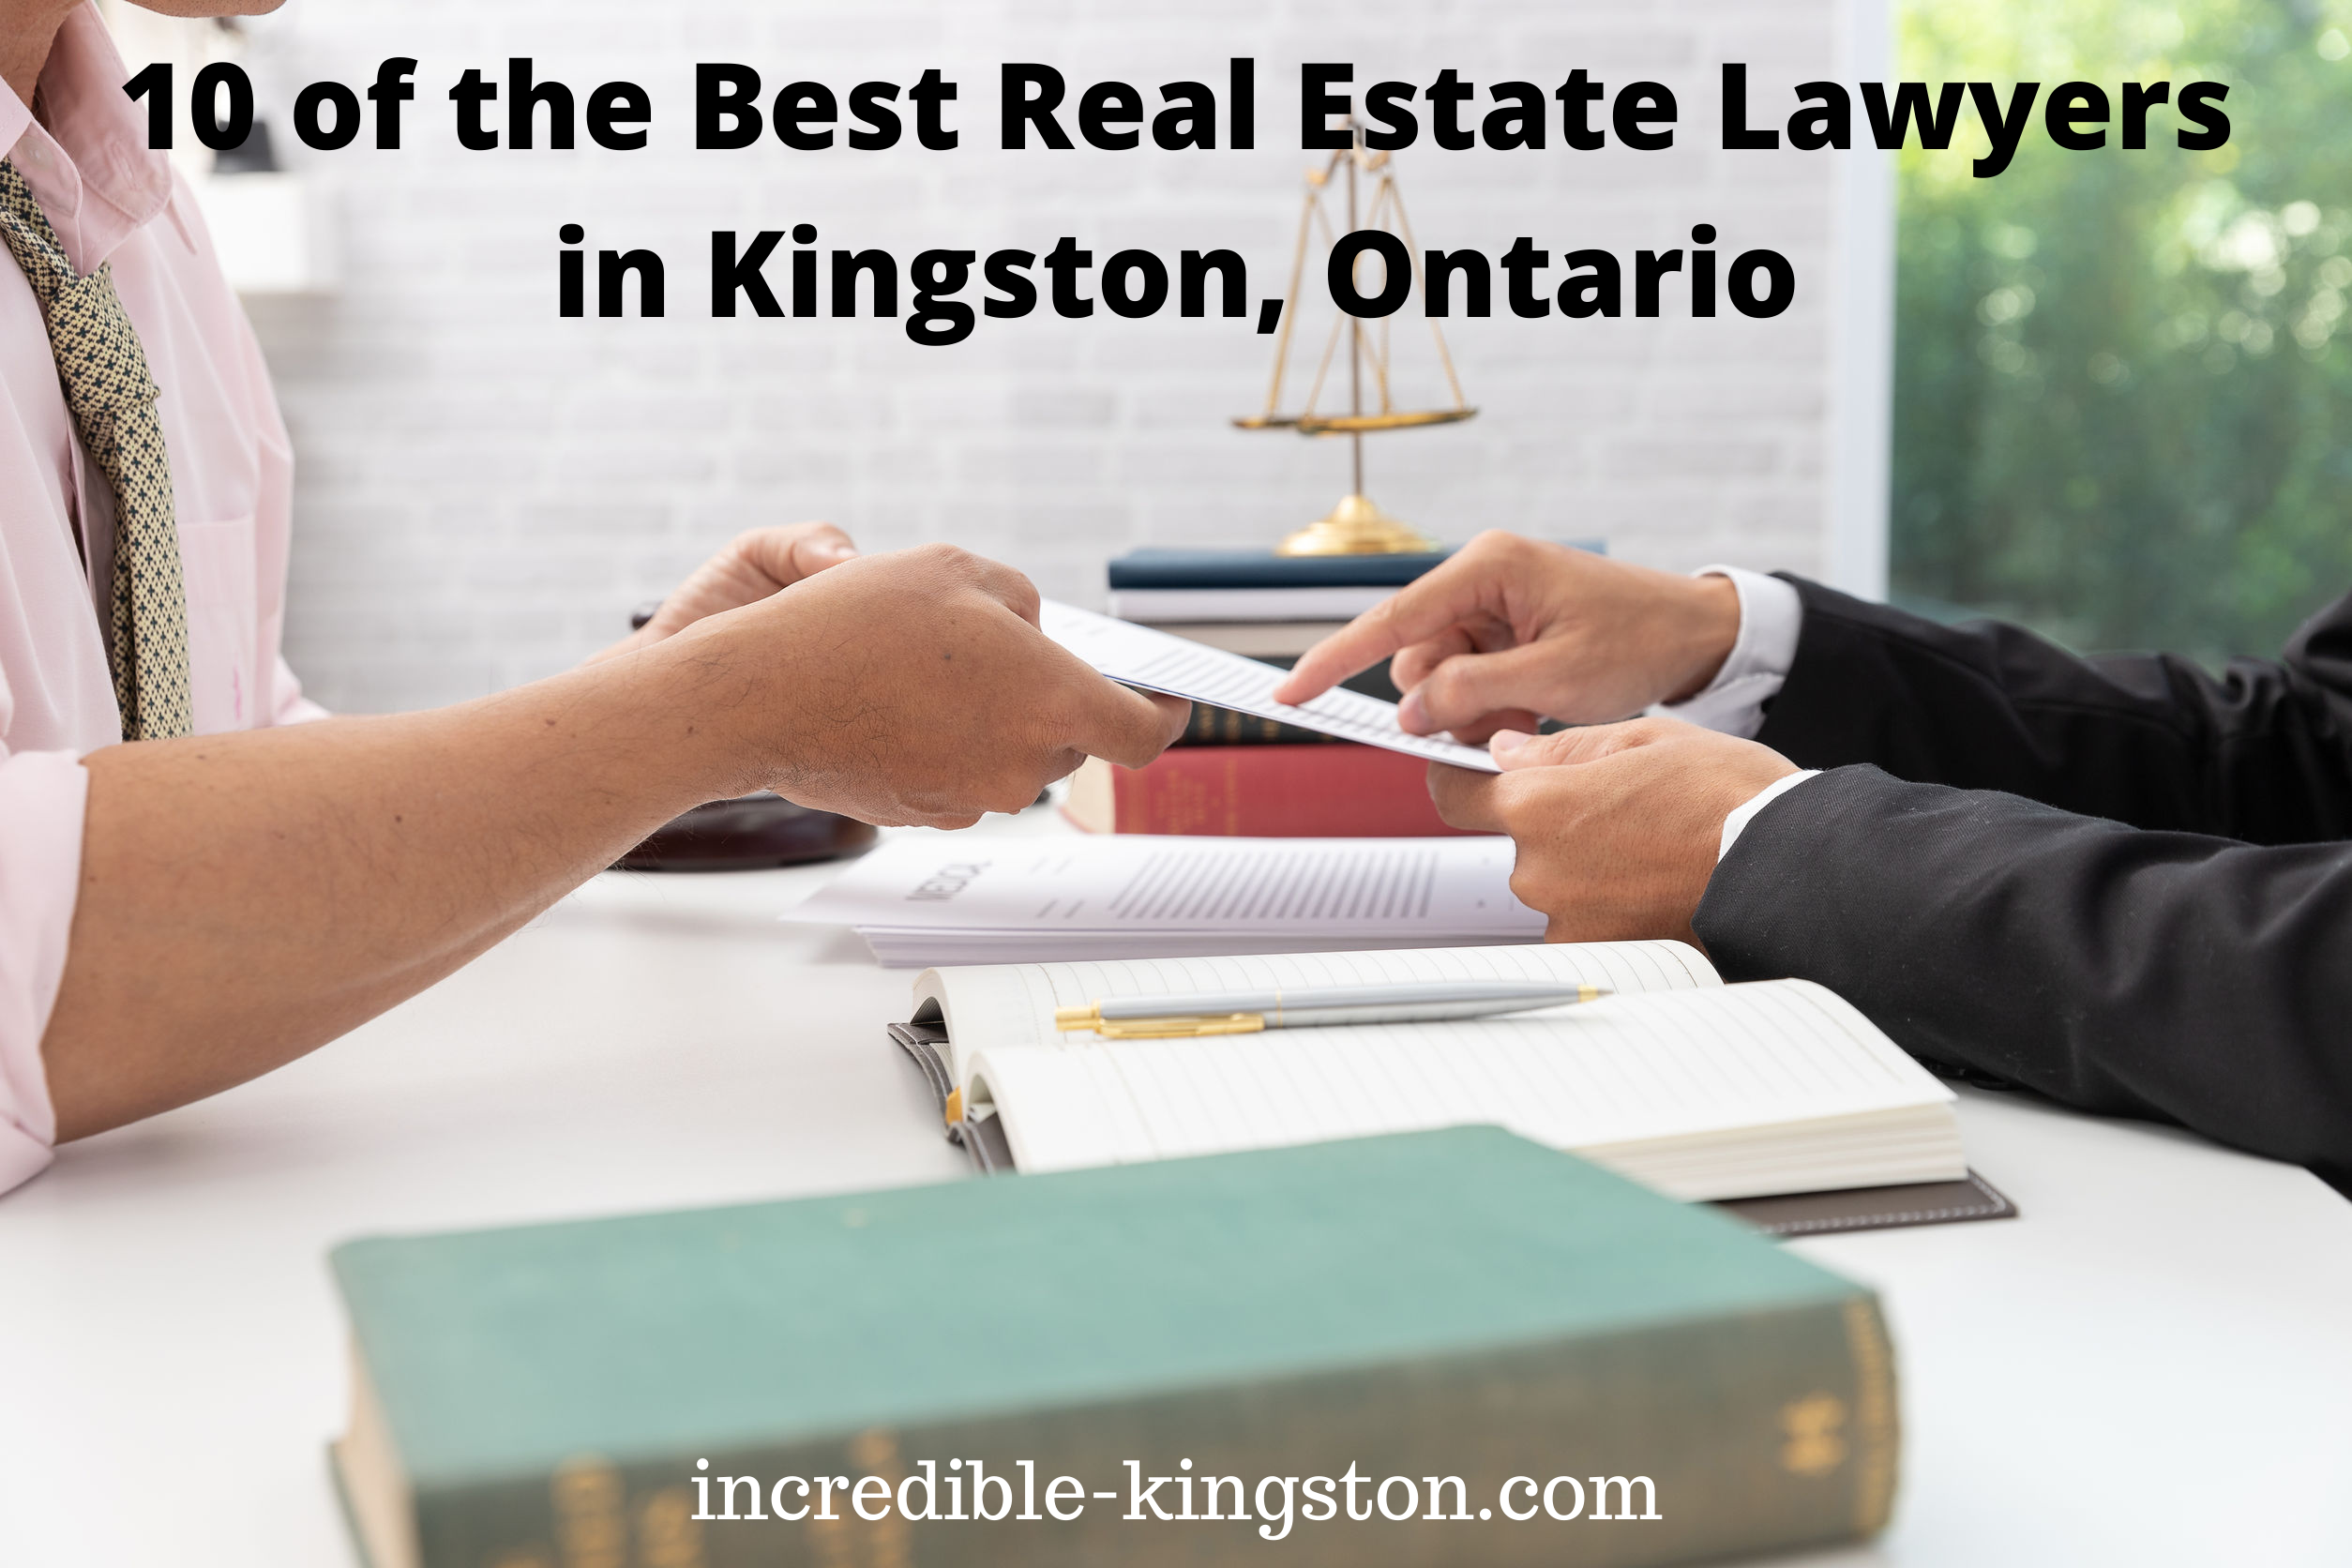 Best Real Estate Lawyers in Kingston, Ontario